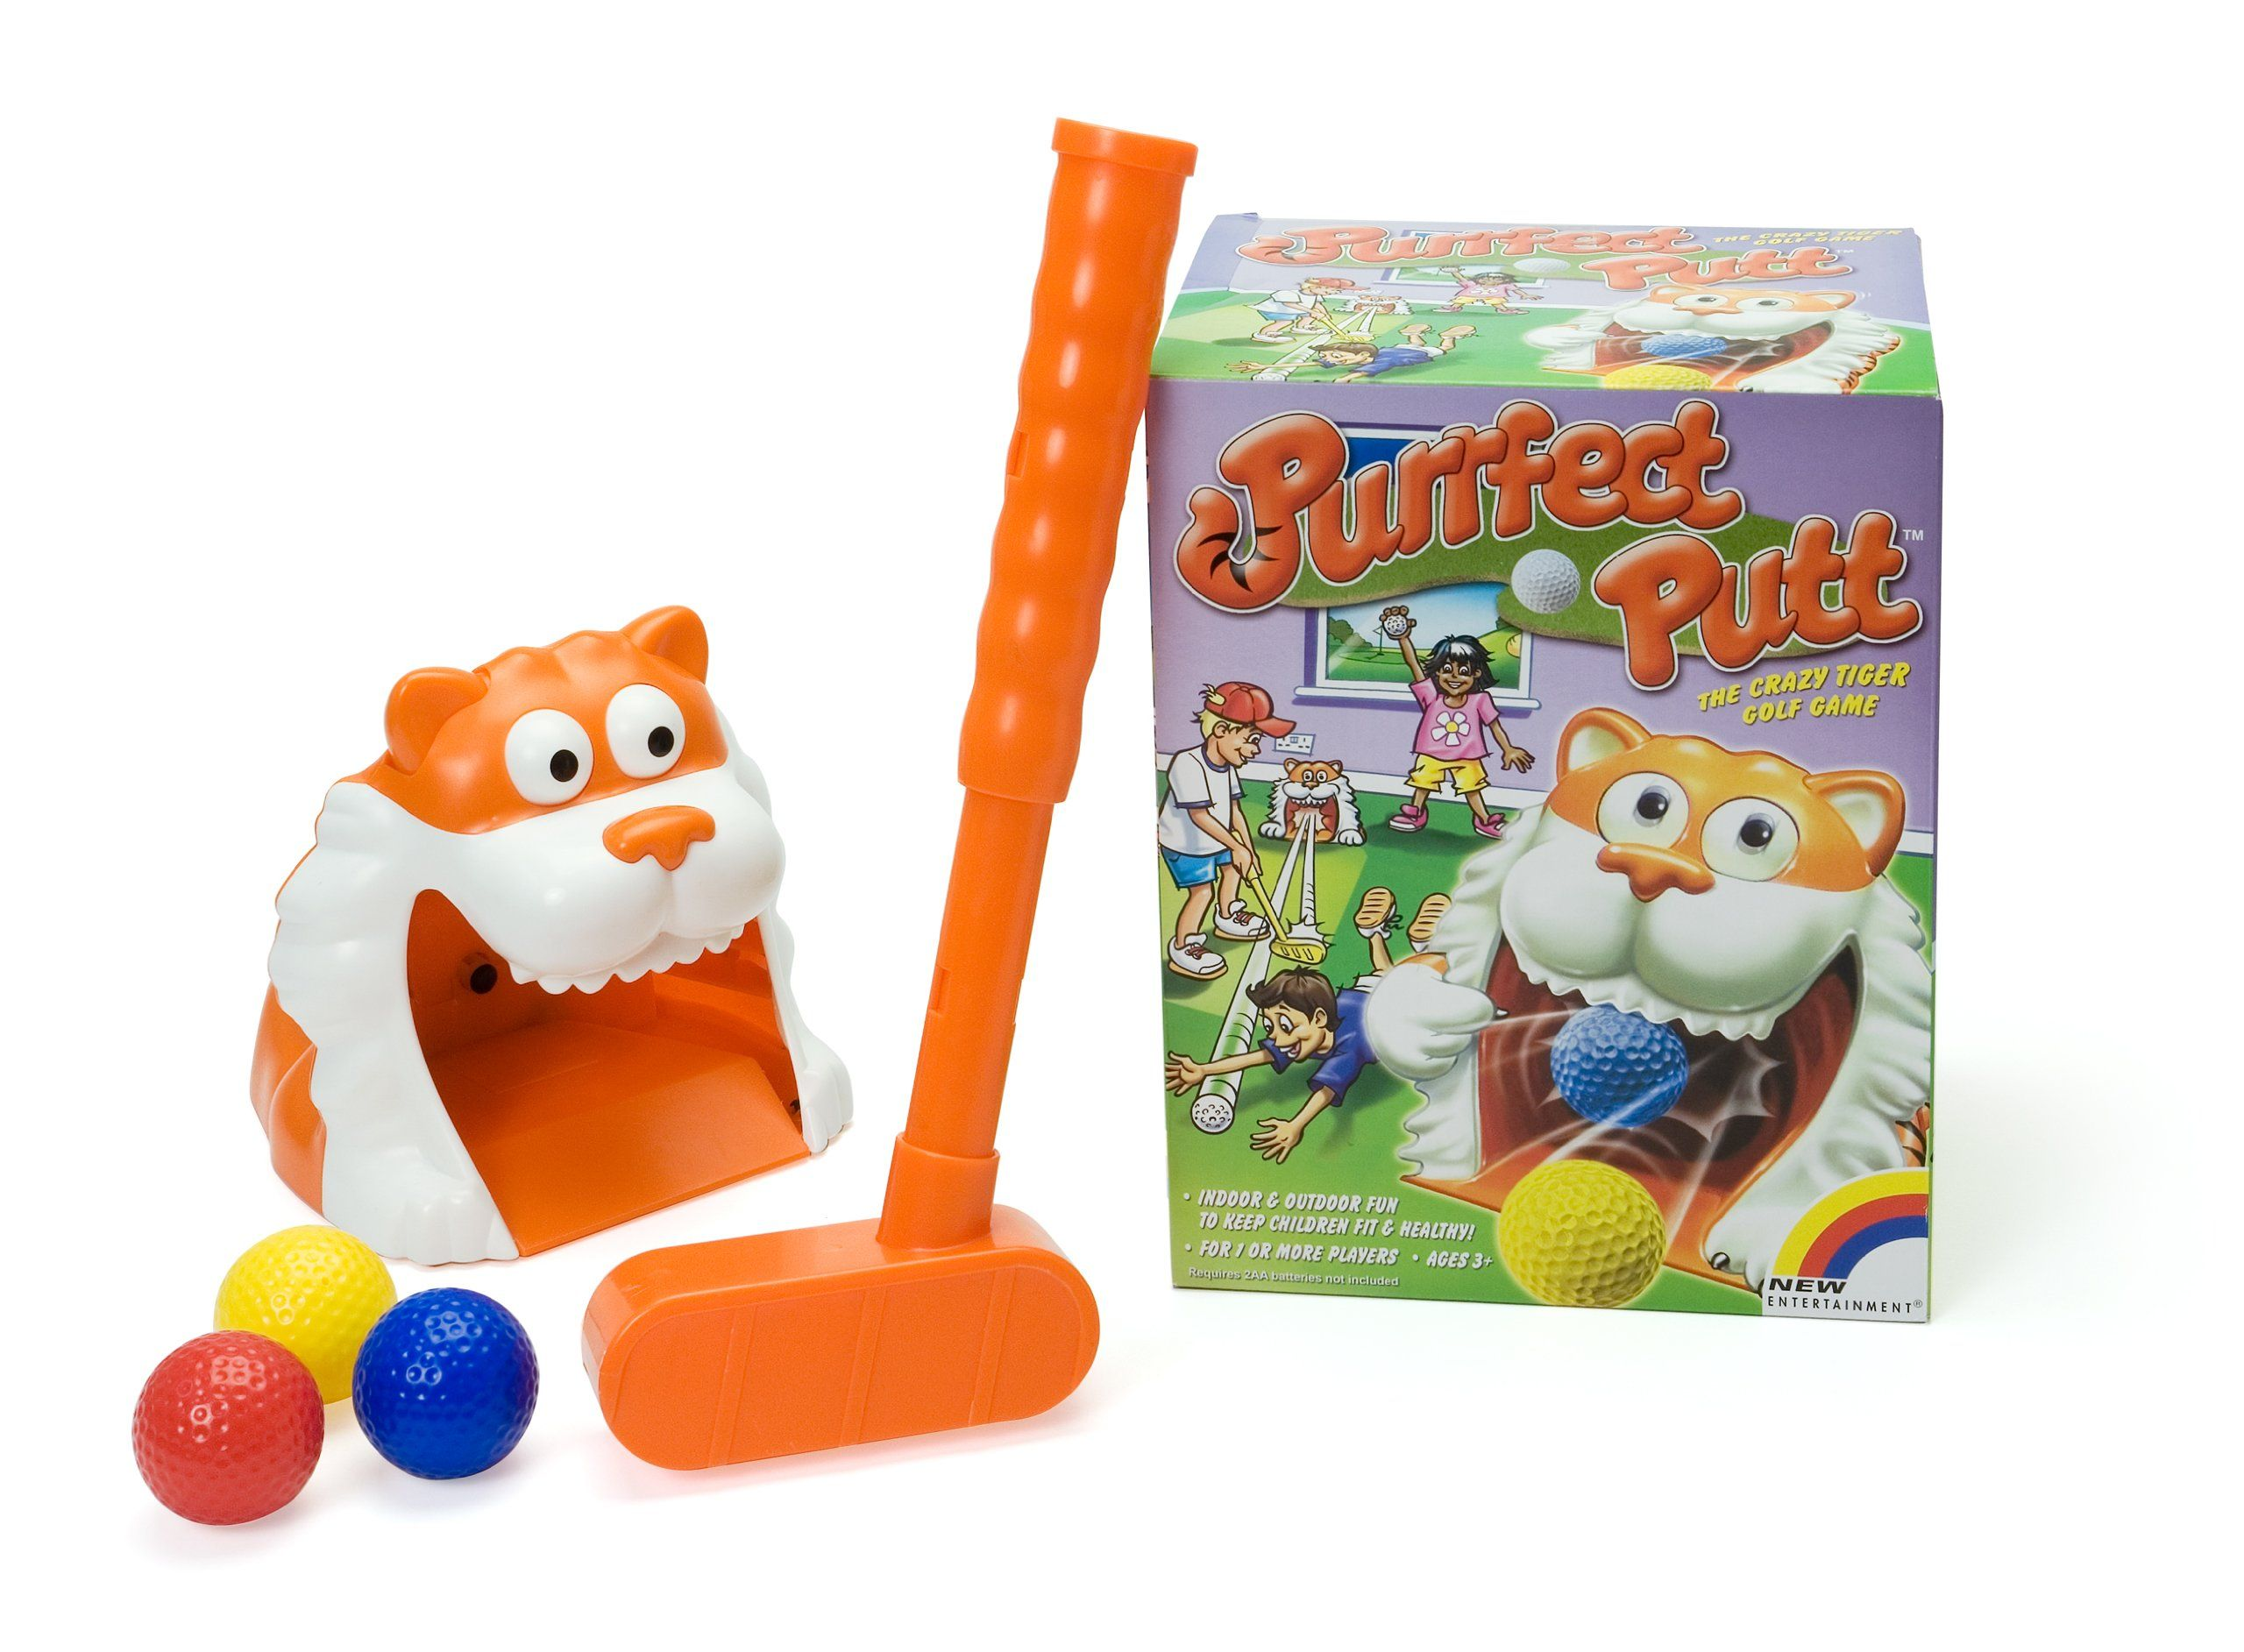 Purrfect Putt Golf Game (With images) Golf game, Golf